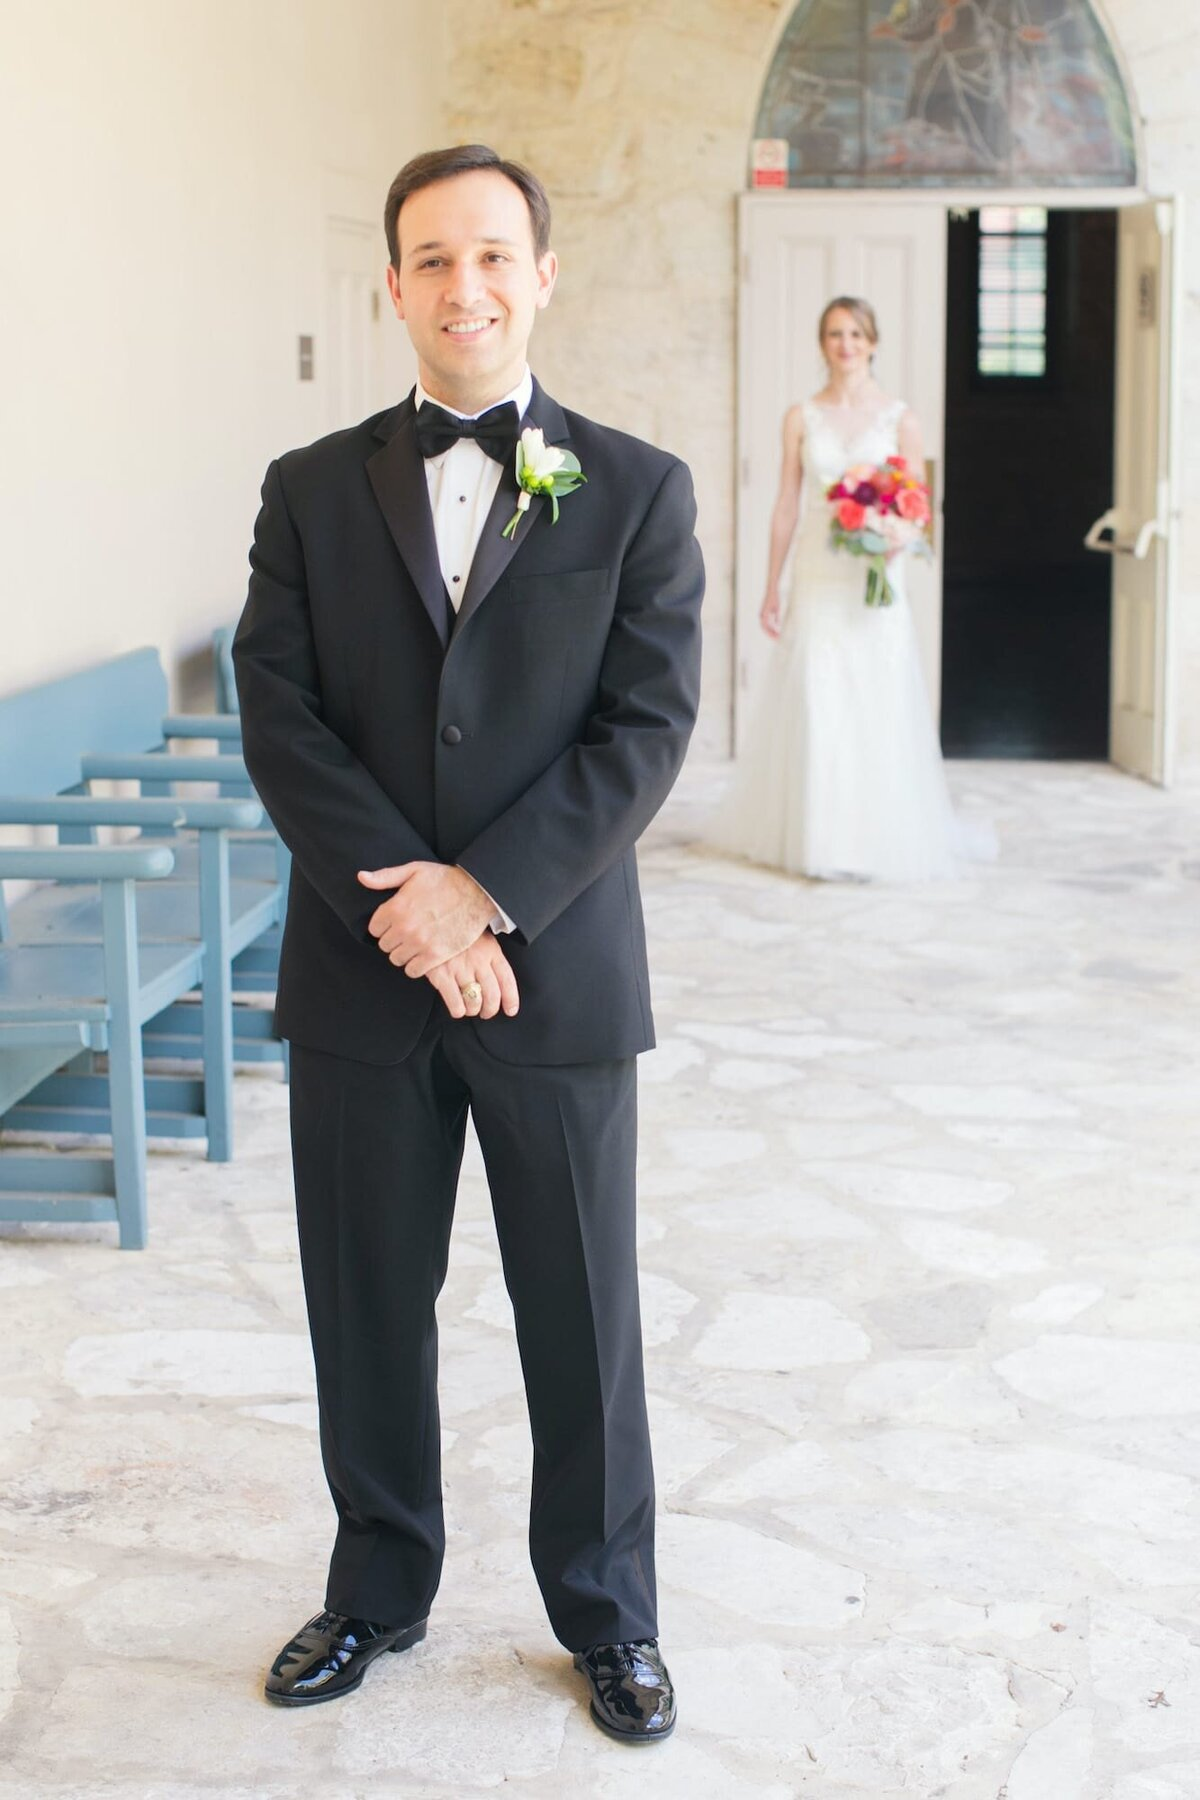 Southwest-School-of-Art-Wedding-1051-112